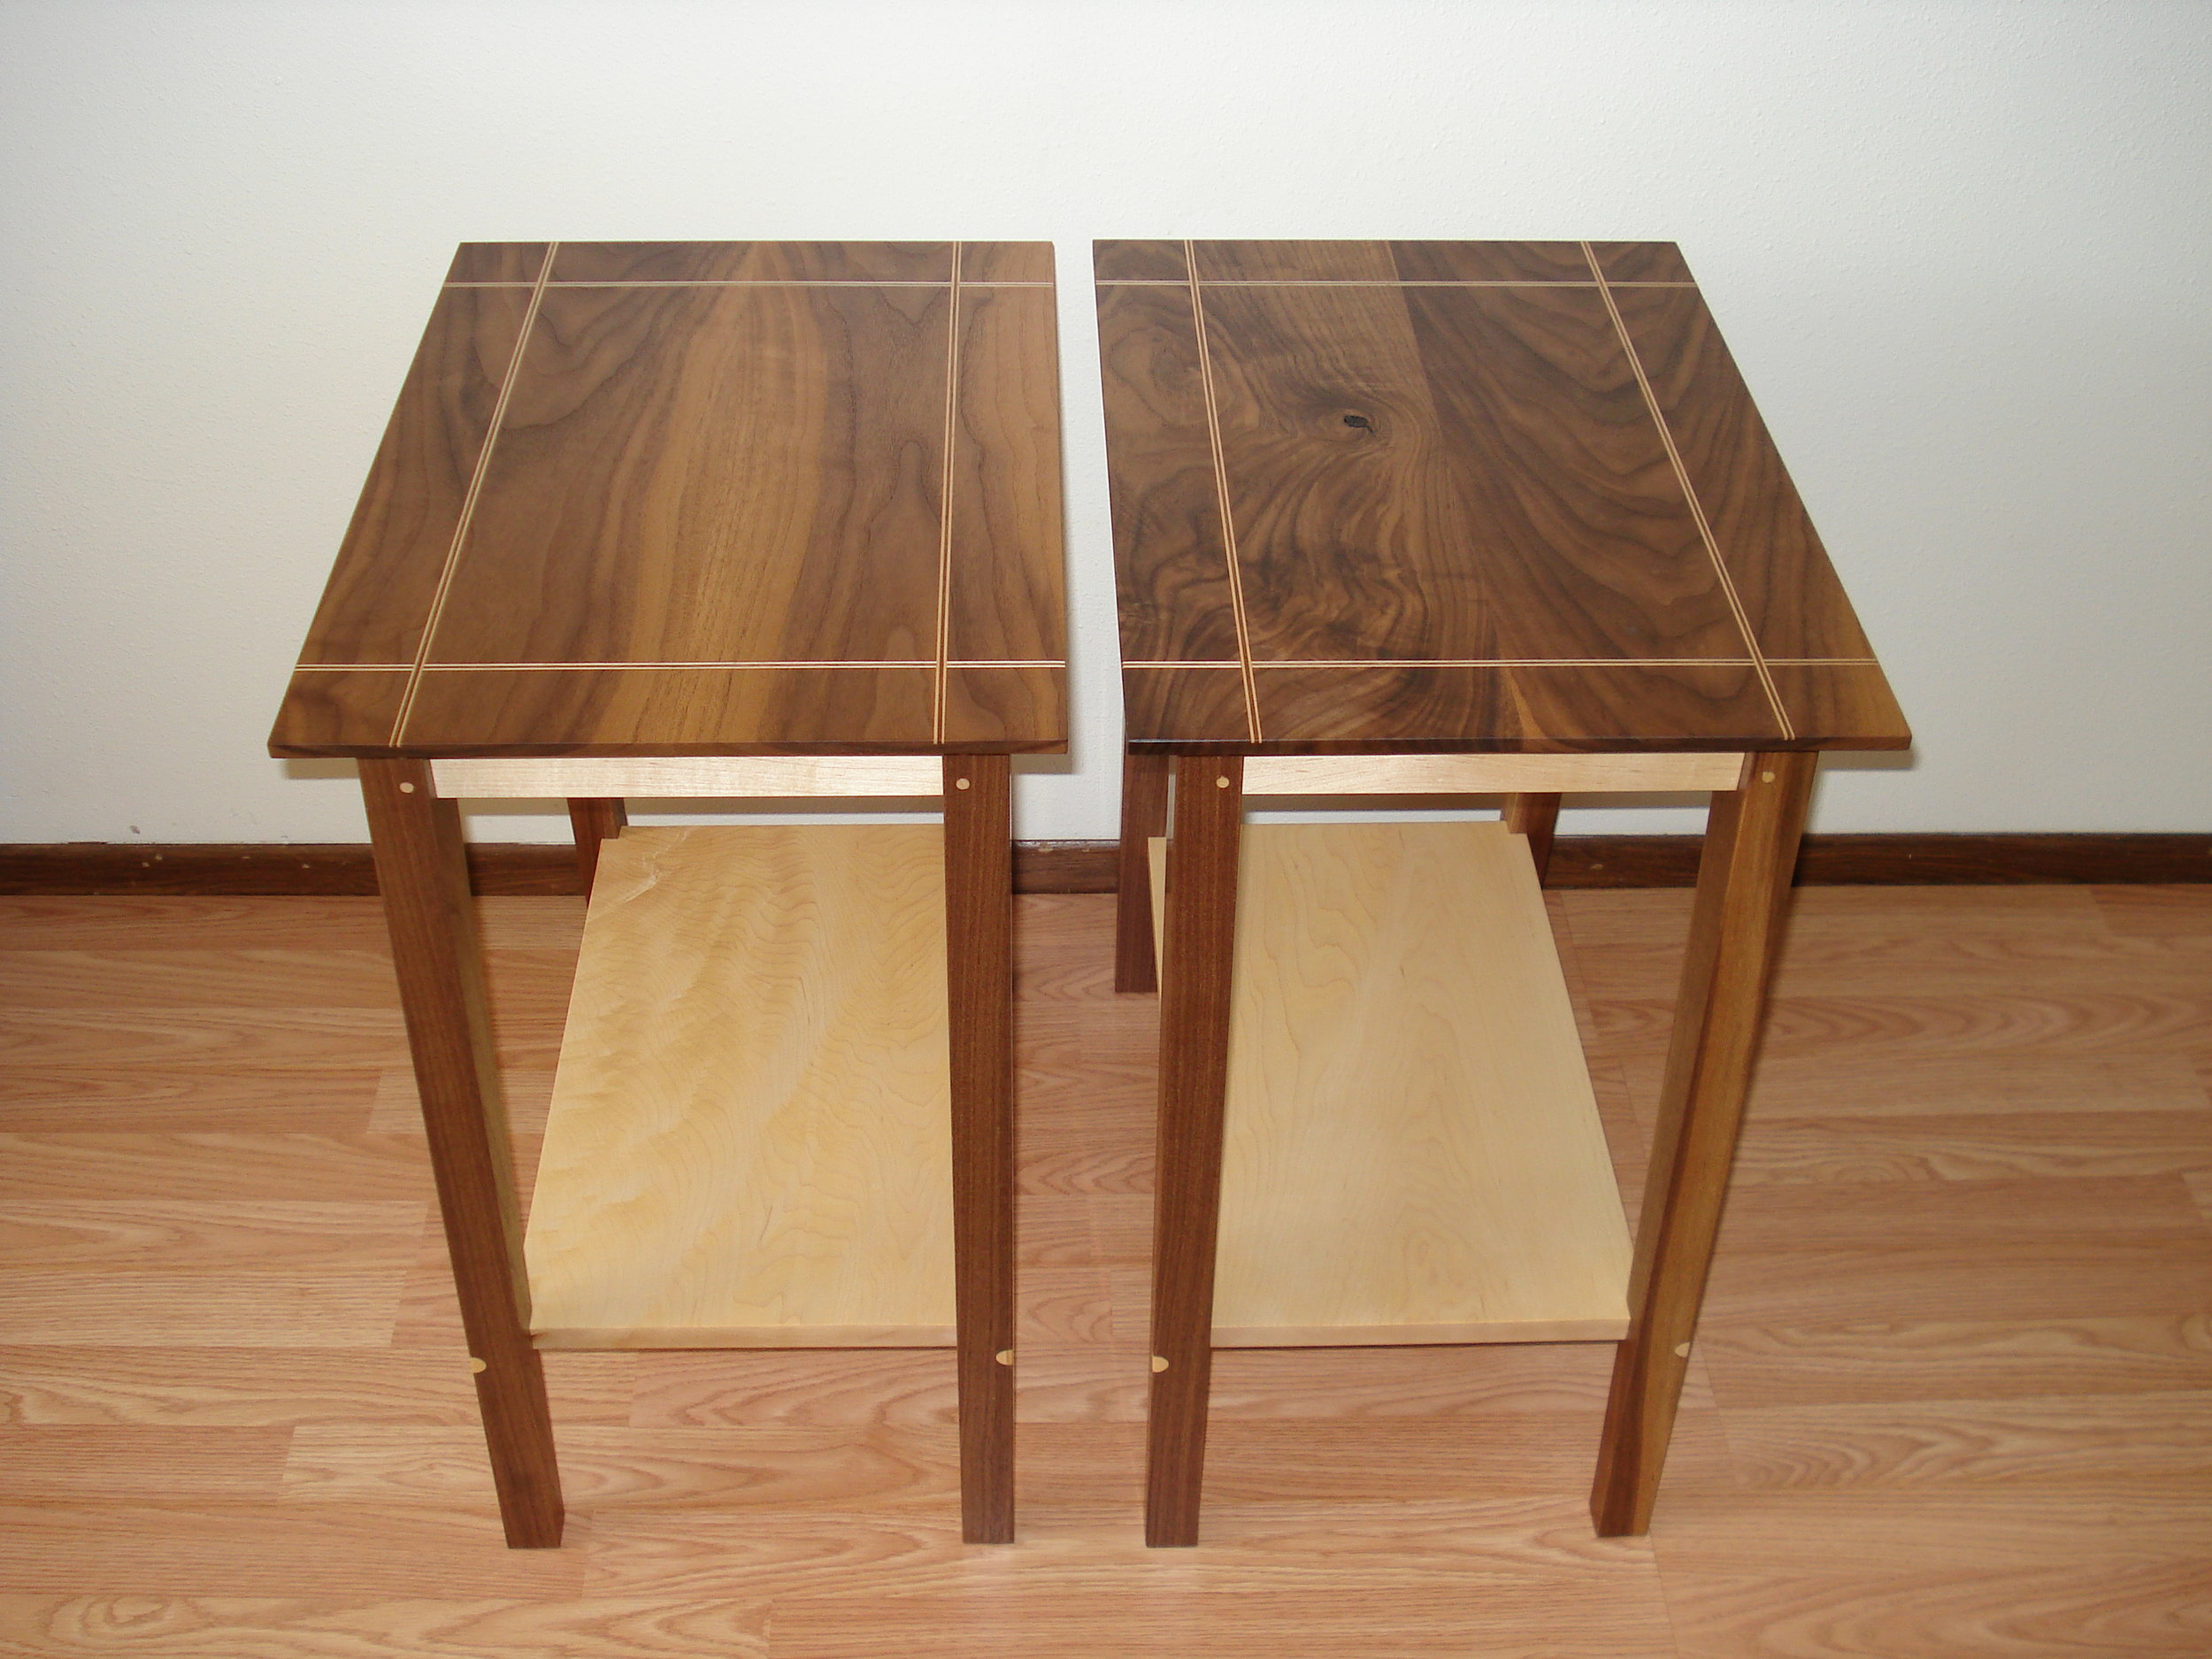 Paired Bedside Tables - Walnut and Maple